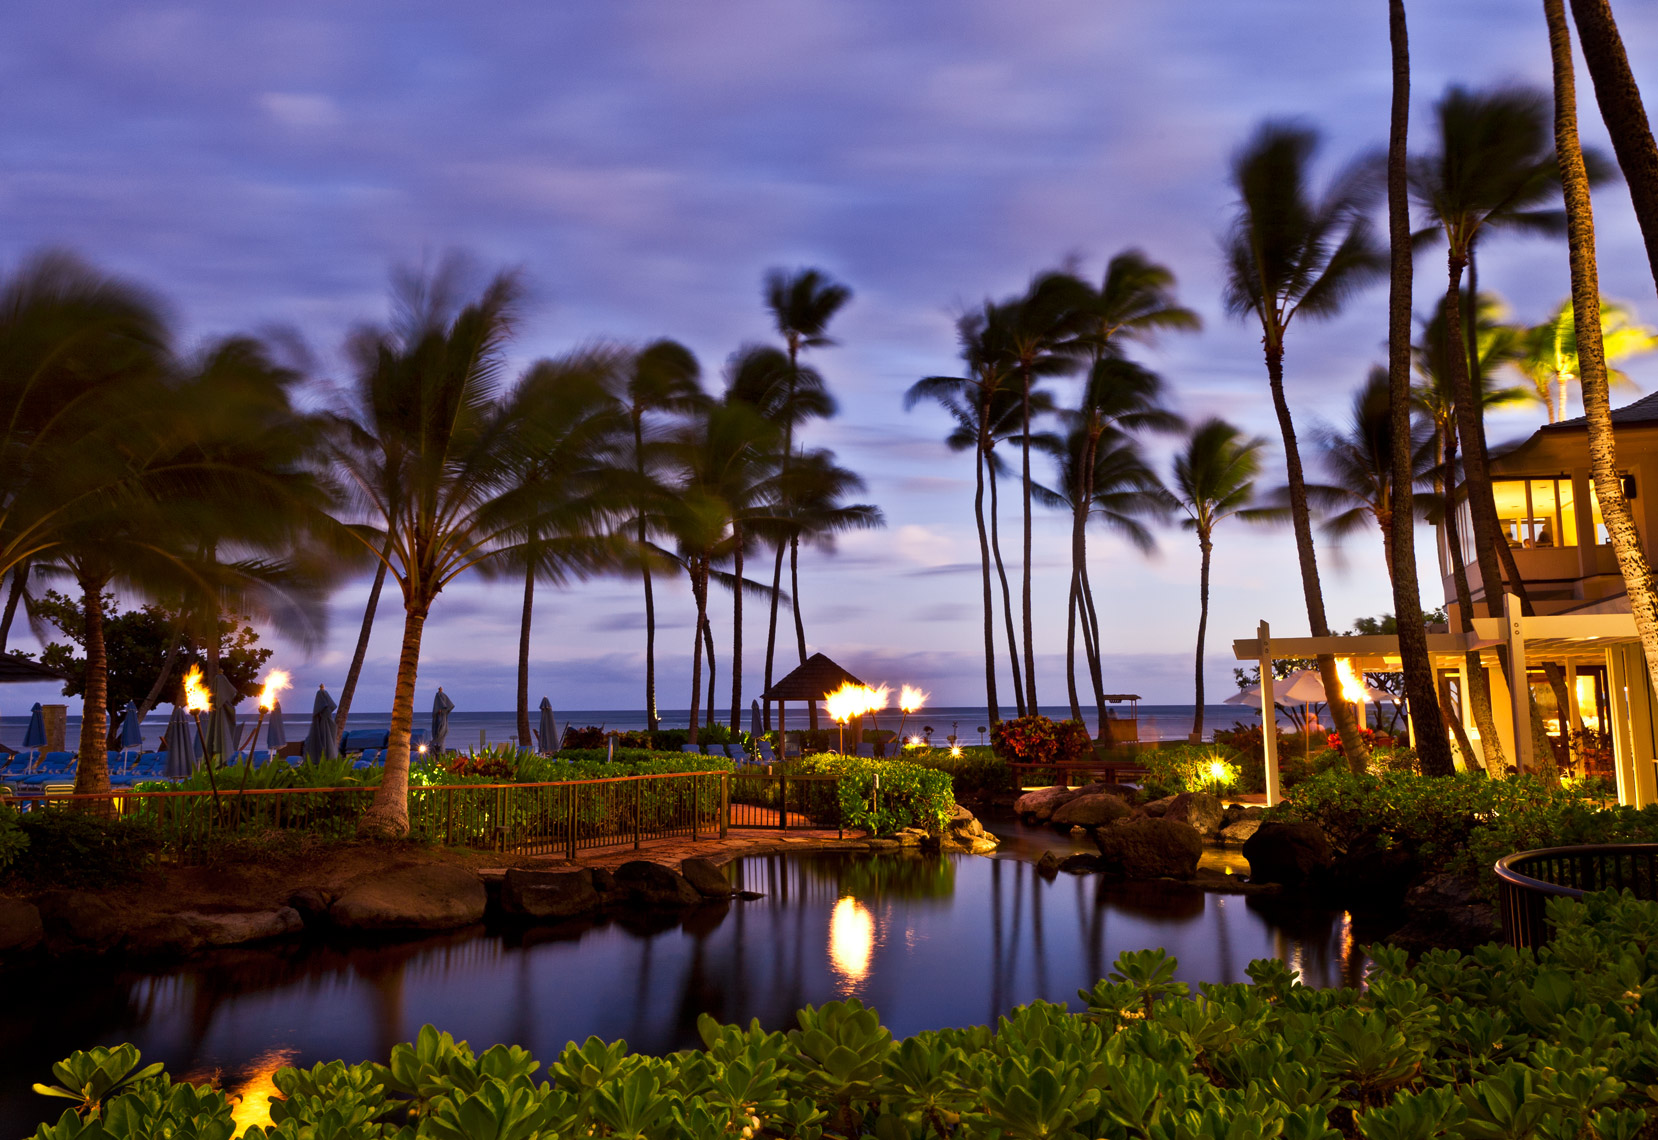 kahala_resort_hawaii_oahu_04.jpg